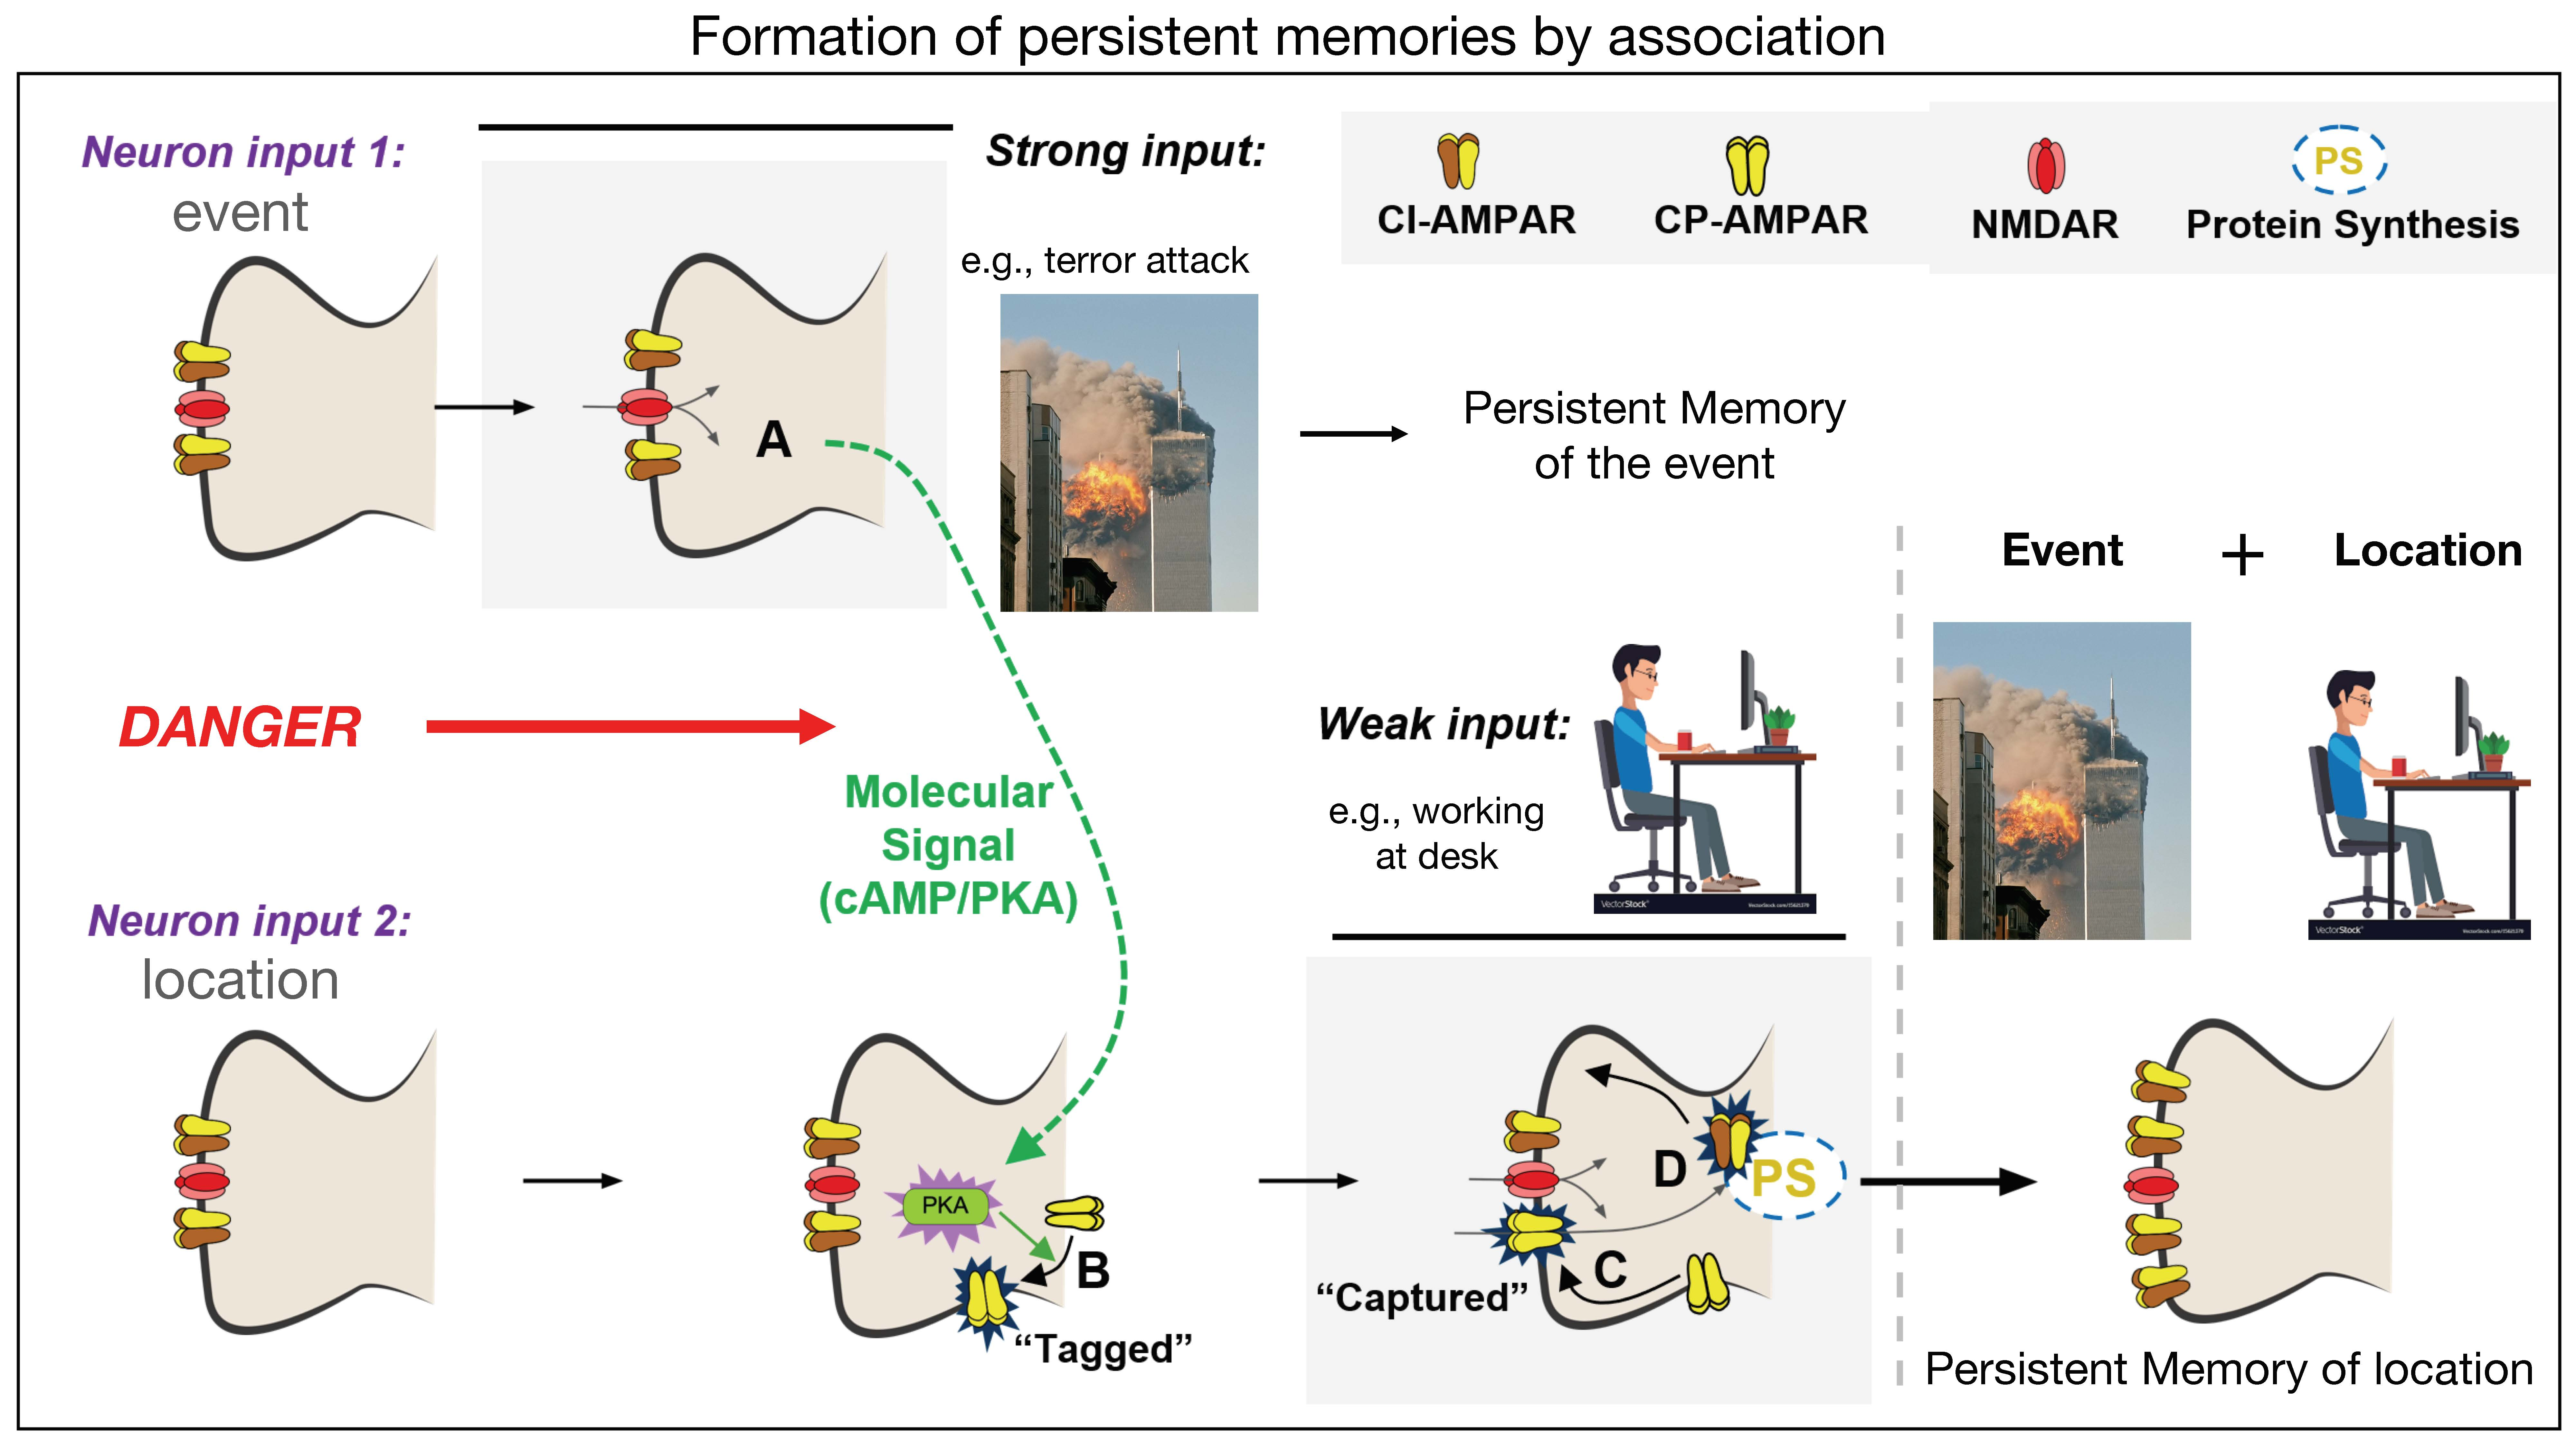 formation of persistent memories by association